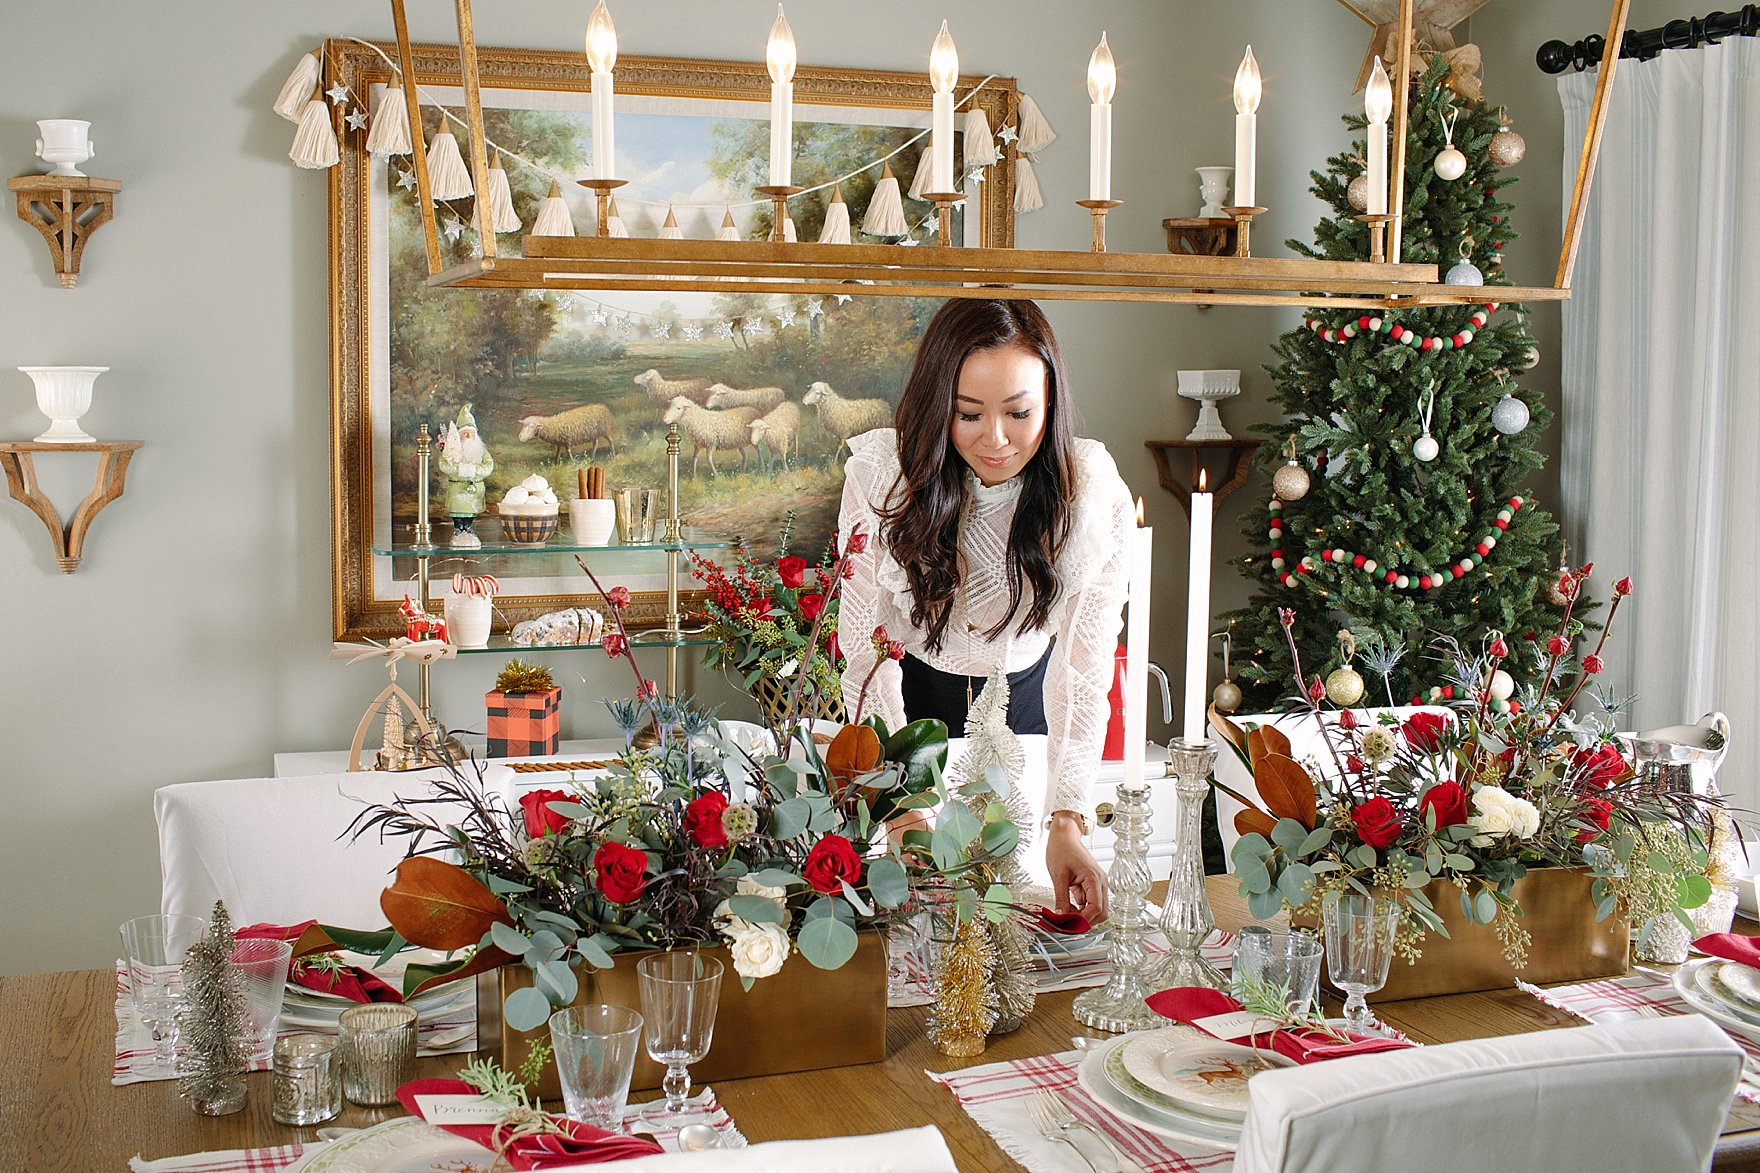 Christmas holiday tables cape inspiration red green and white Ballard Designs with blogger Diana Elizabeth